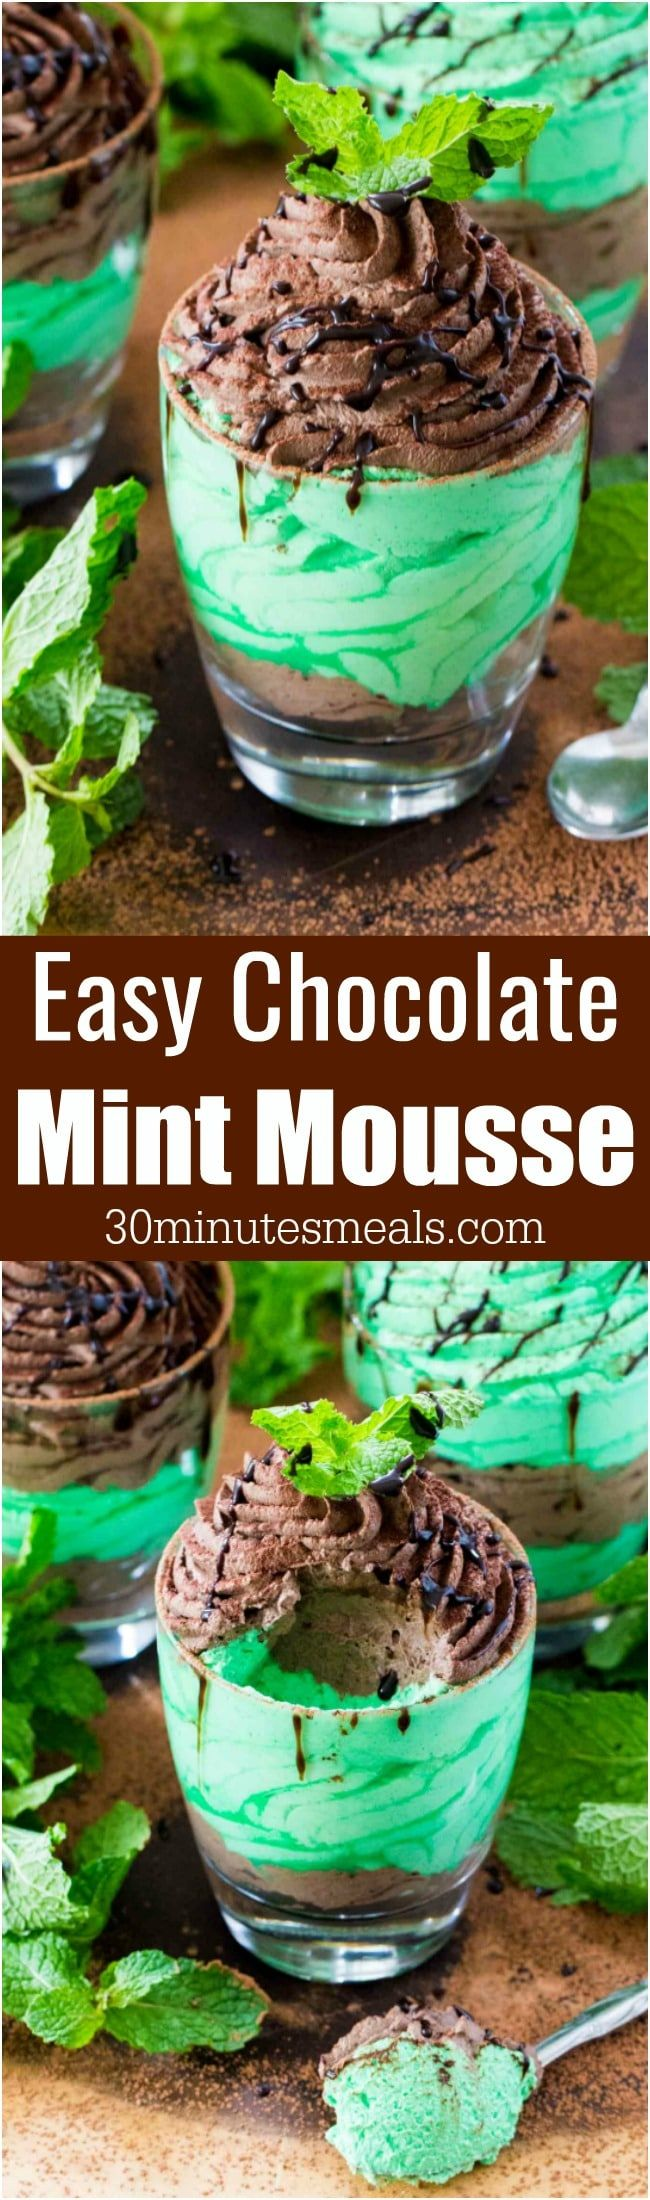 Easy Chocolate Mint Mousse made with just a few ingredients is a flavorful and creamy take on the classic, more labor intensive mousse. #nobake #mousse #chocolate #mint